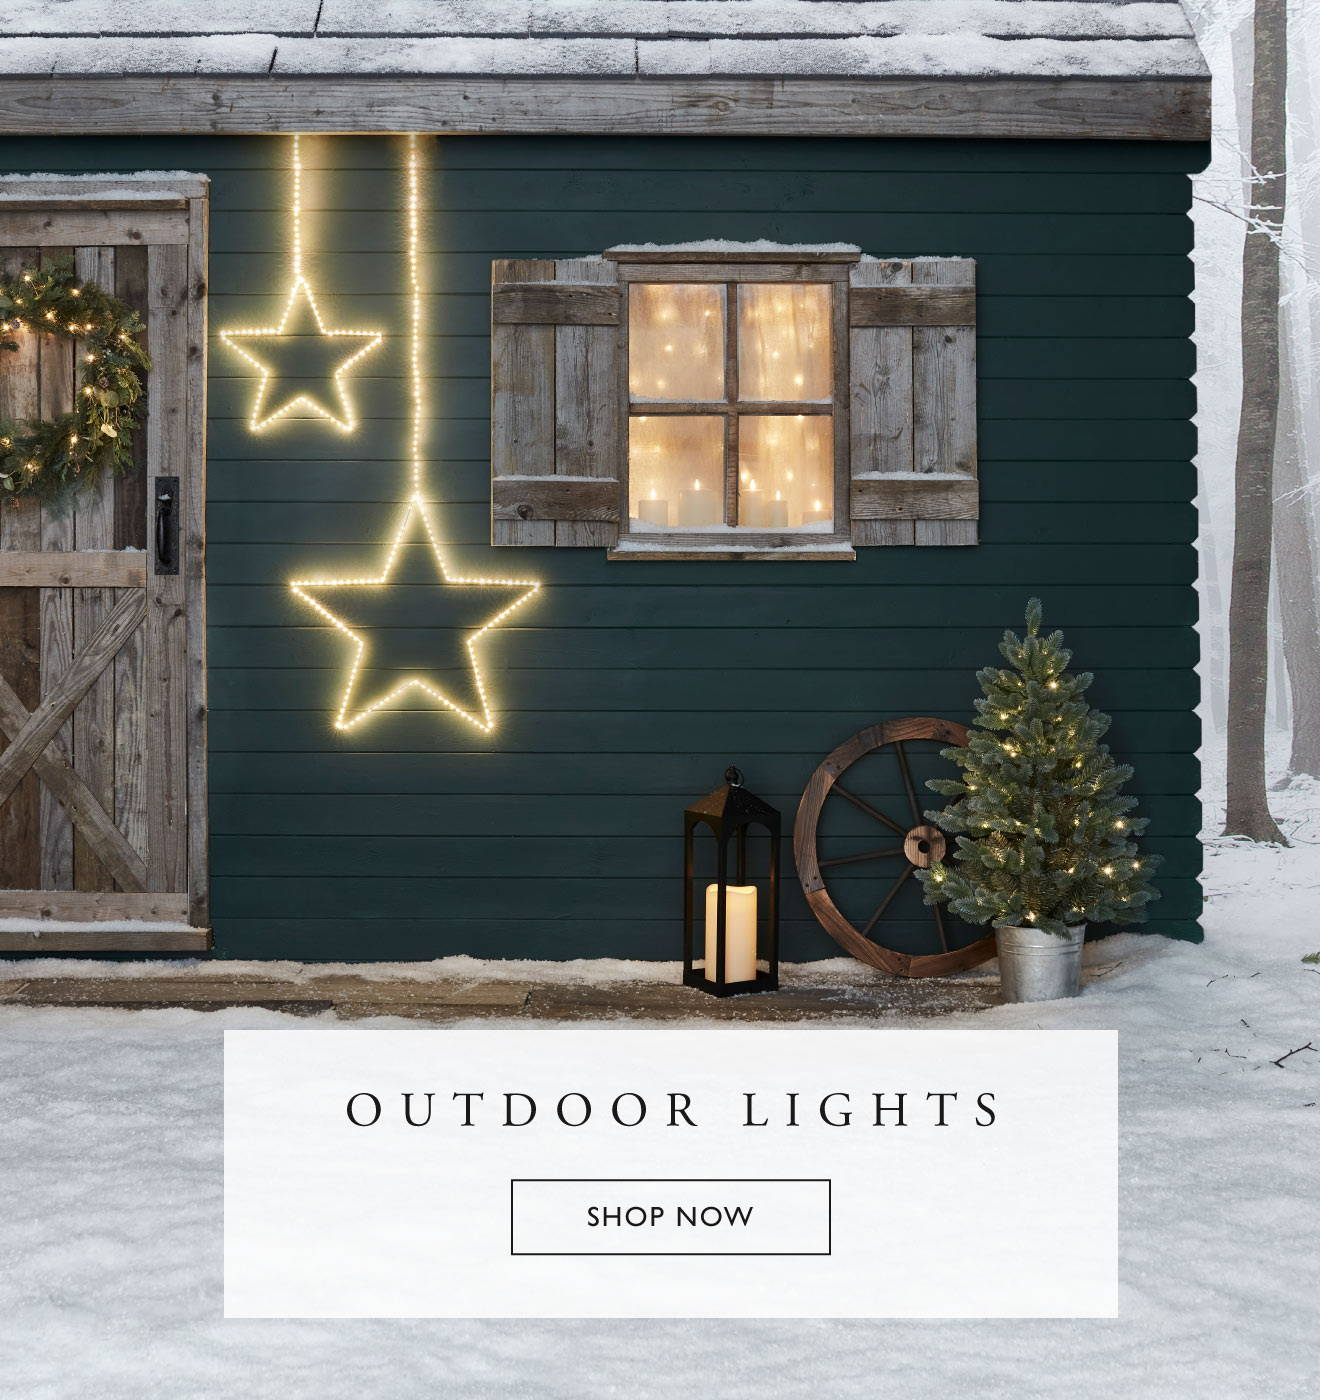 Outdoor Christmas Lights Lights4fun Co Uk